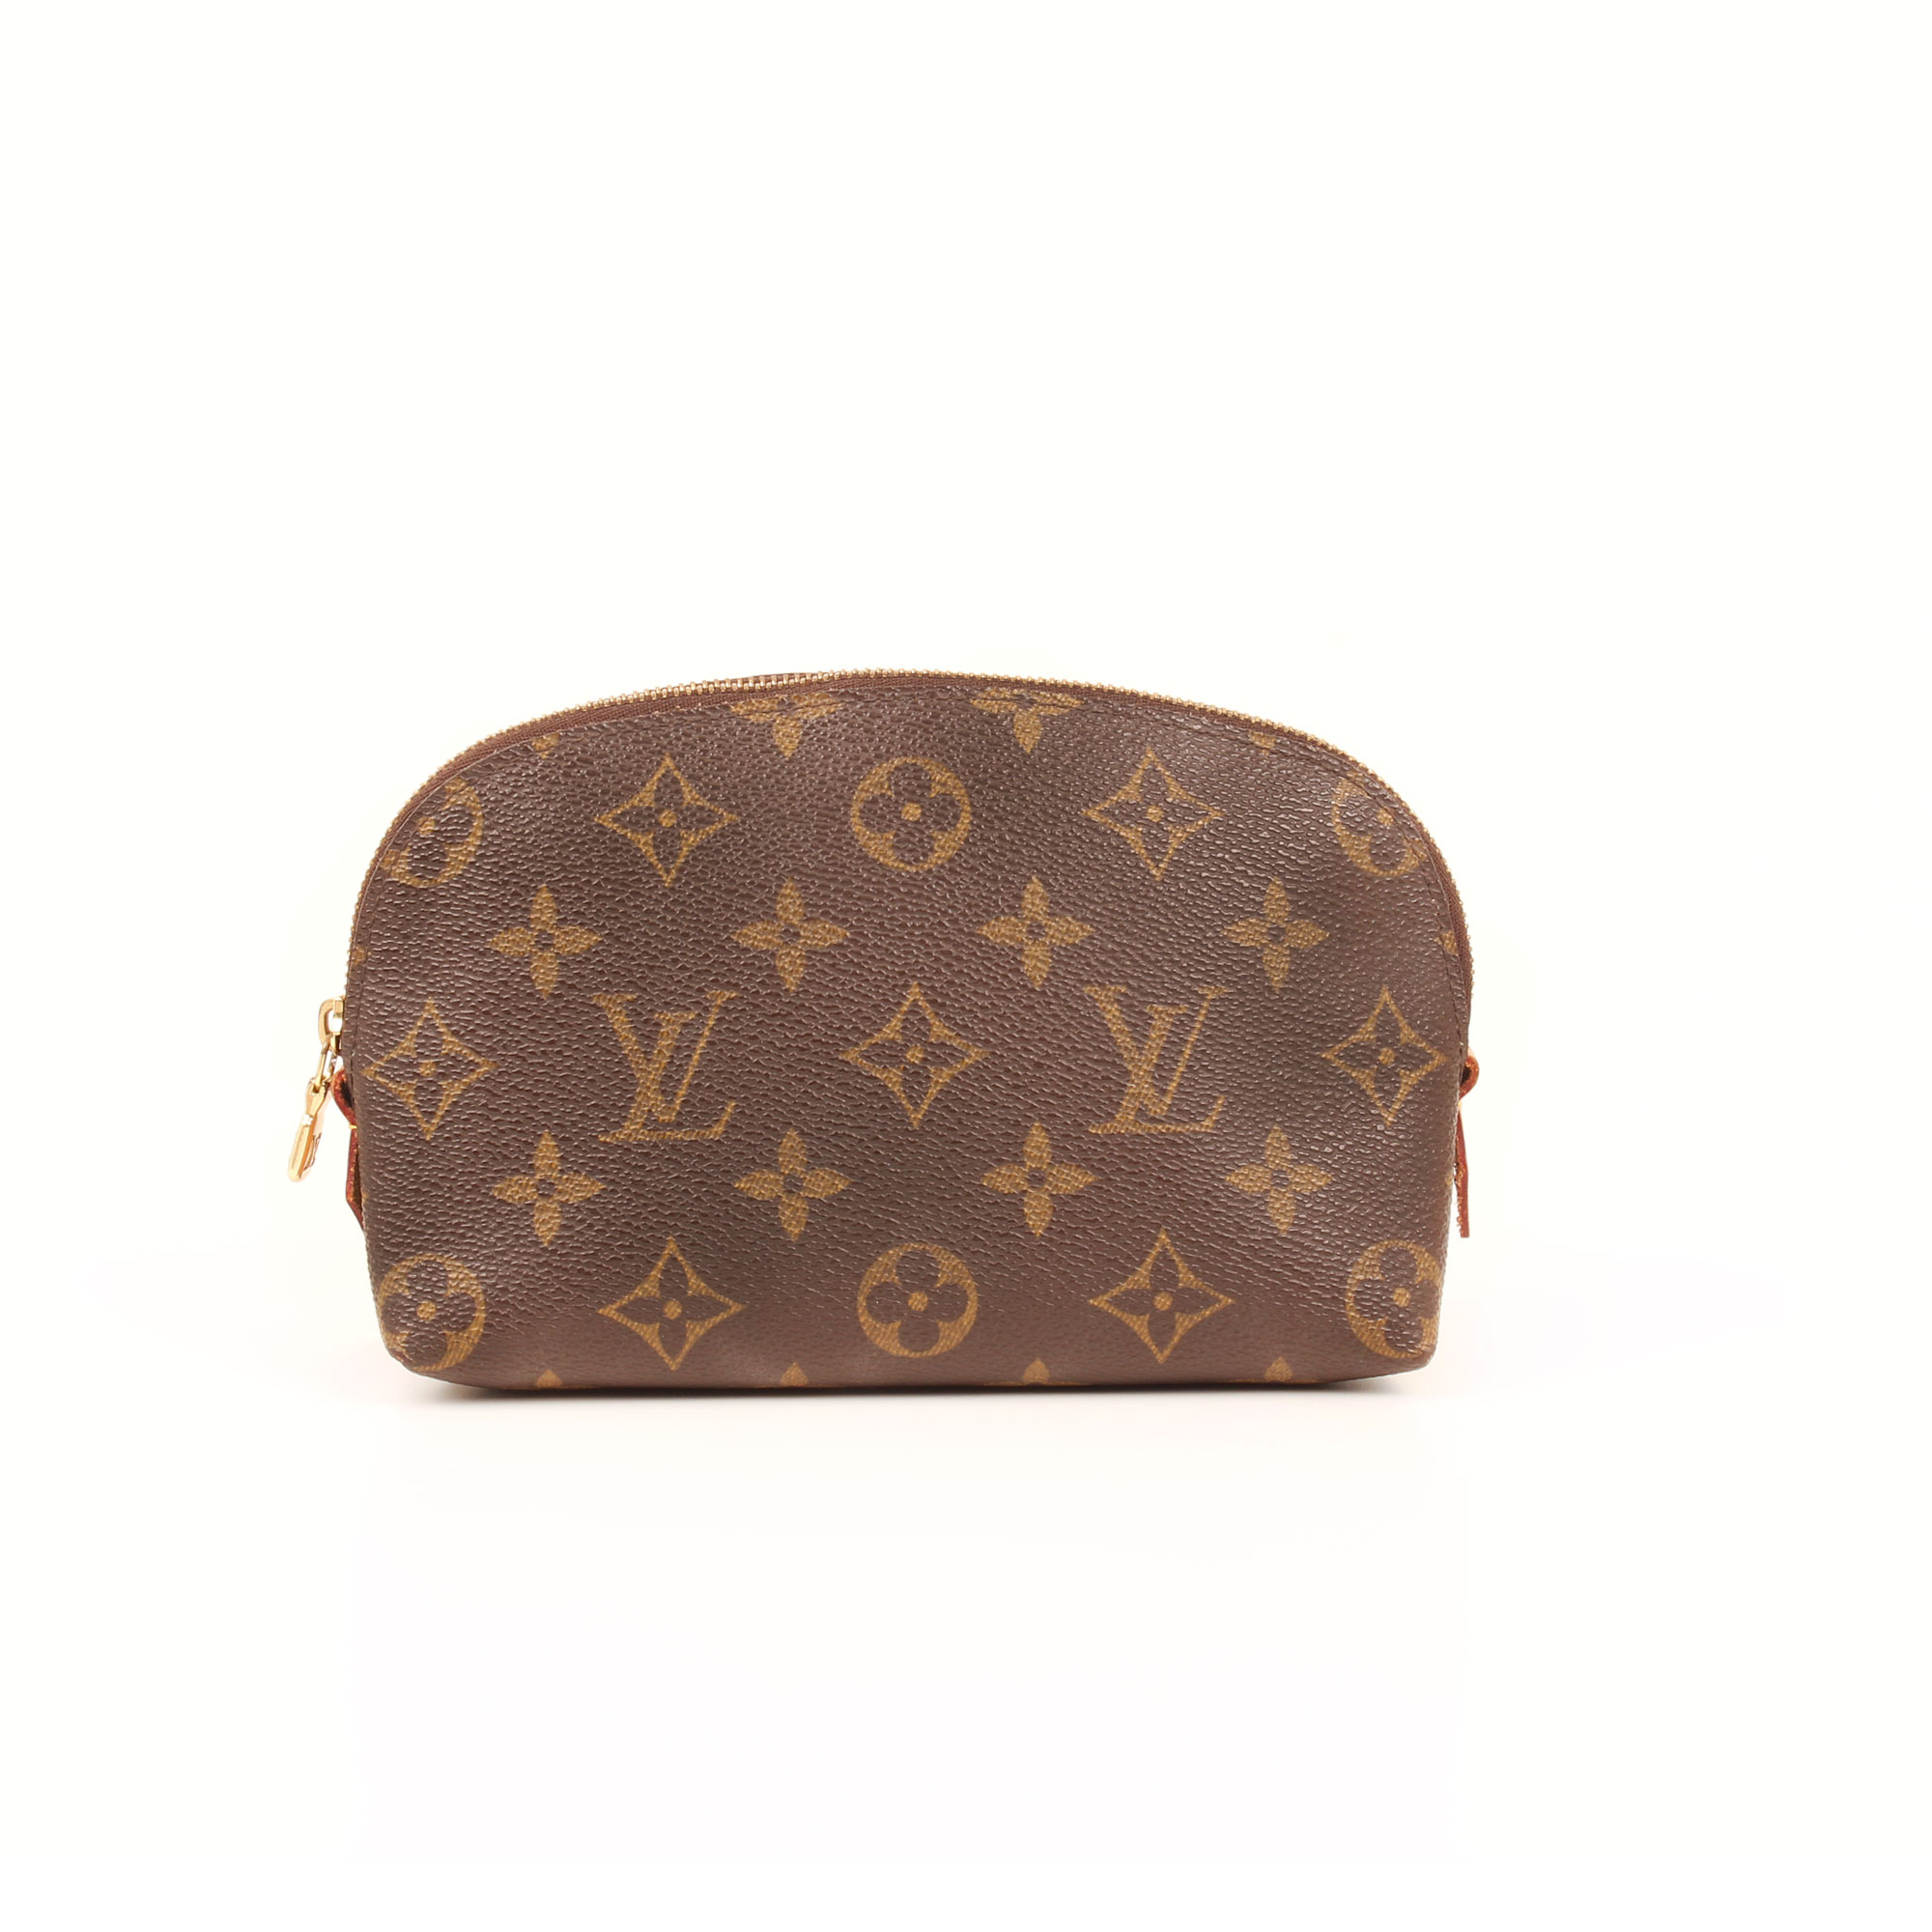 Front image of louis vuitton cosmetic pouch monogram